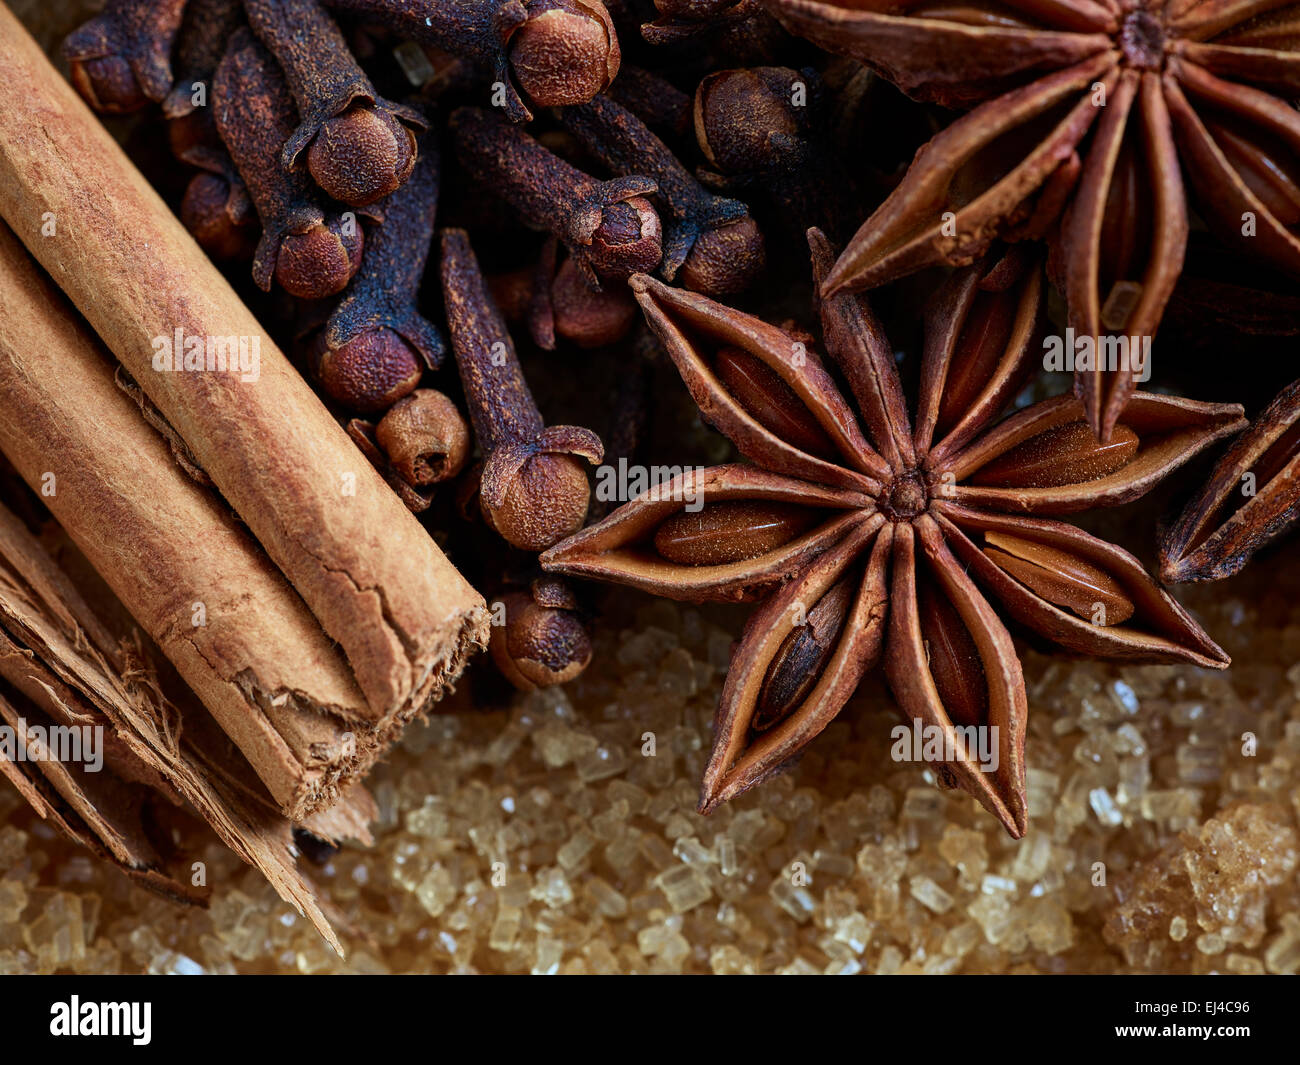 Cinnamon, Cloves, Star anise and Brown Sugar - Stock Image